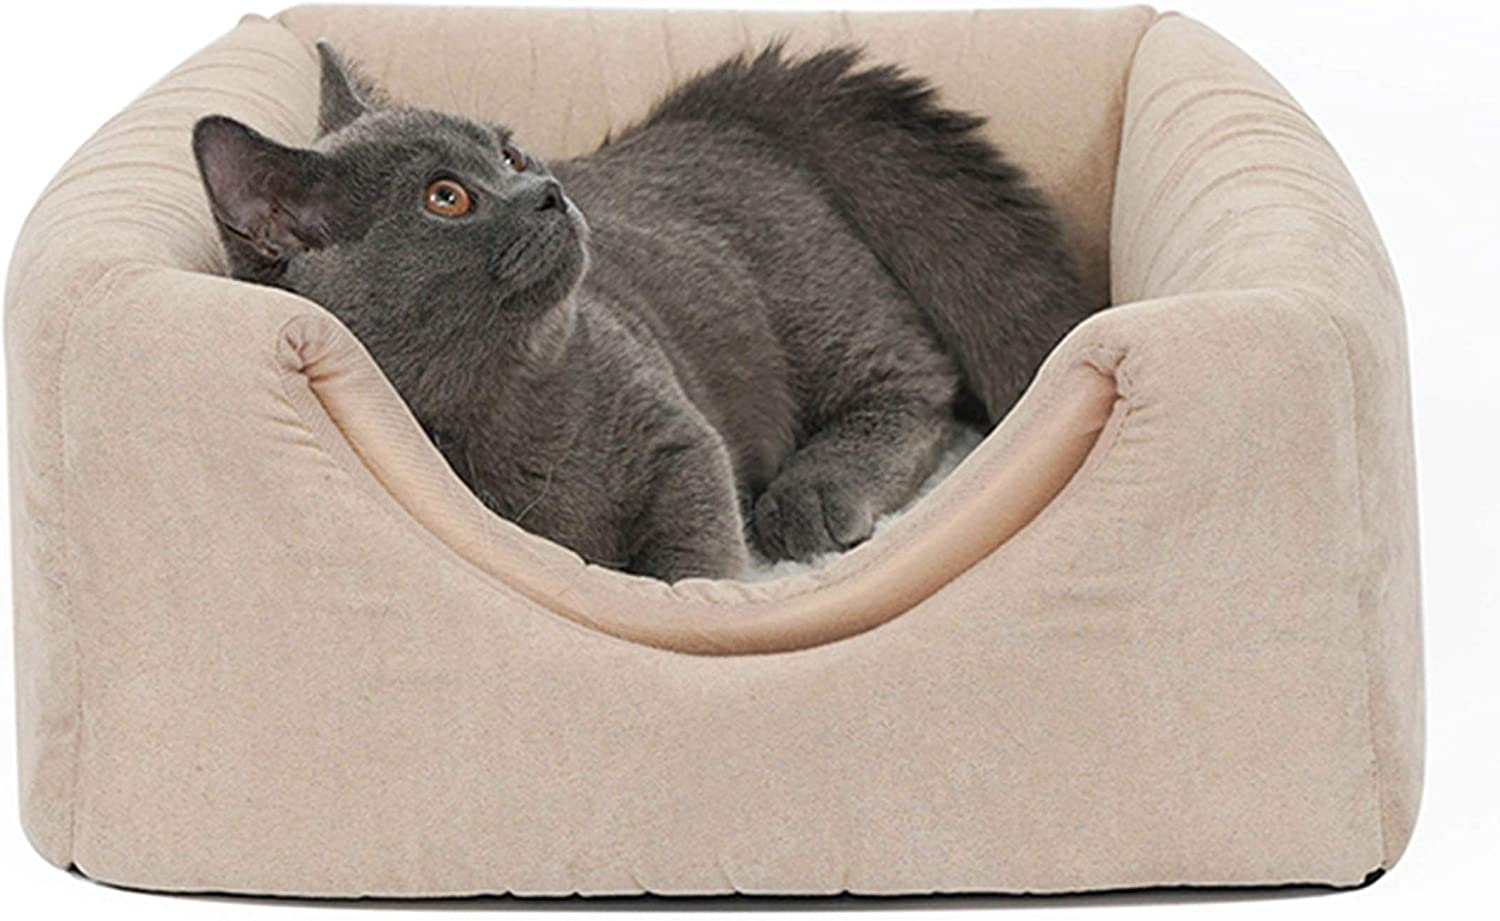 HHCWW Four seasons universal removable and washable folding cat house cat supplies winter warm closed net red cat litter,b